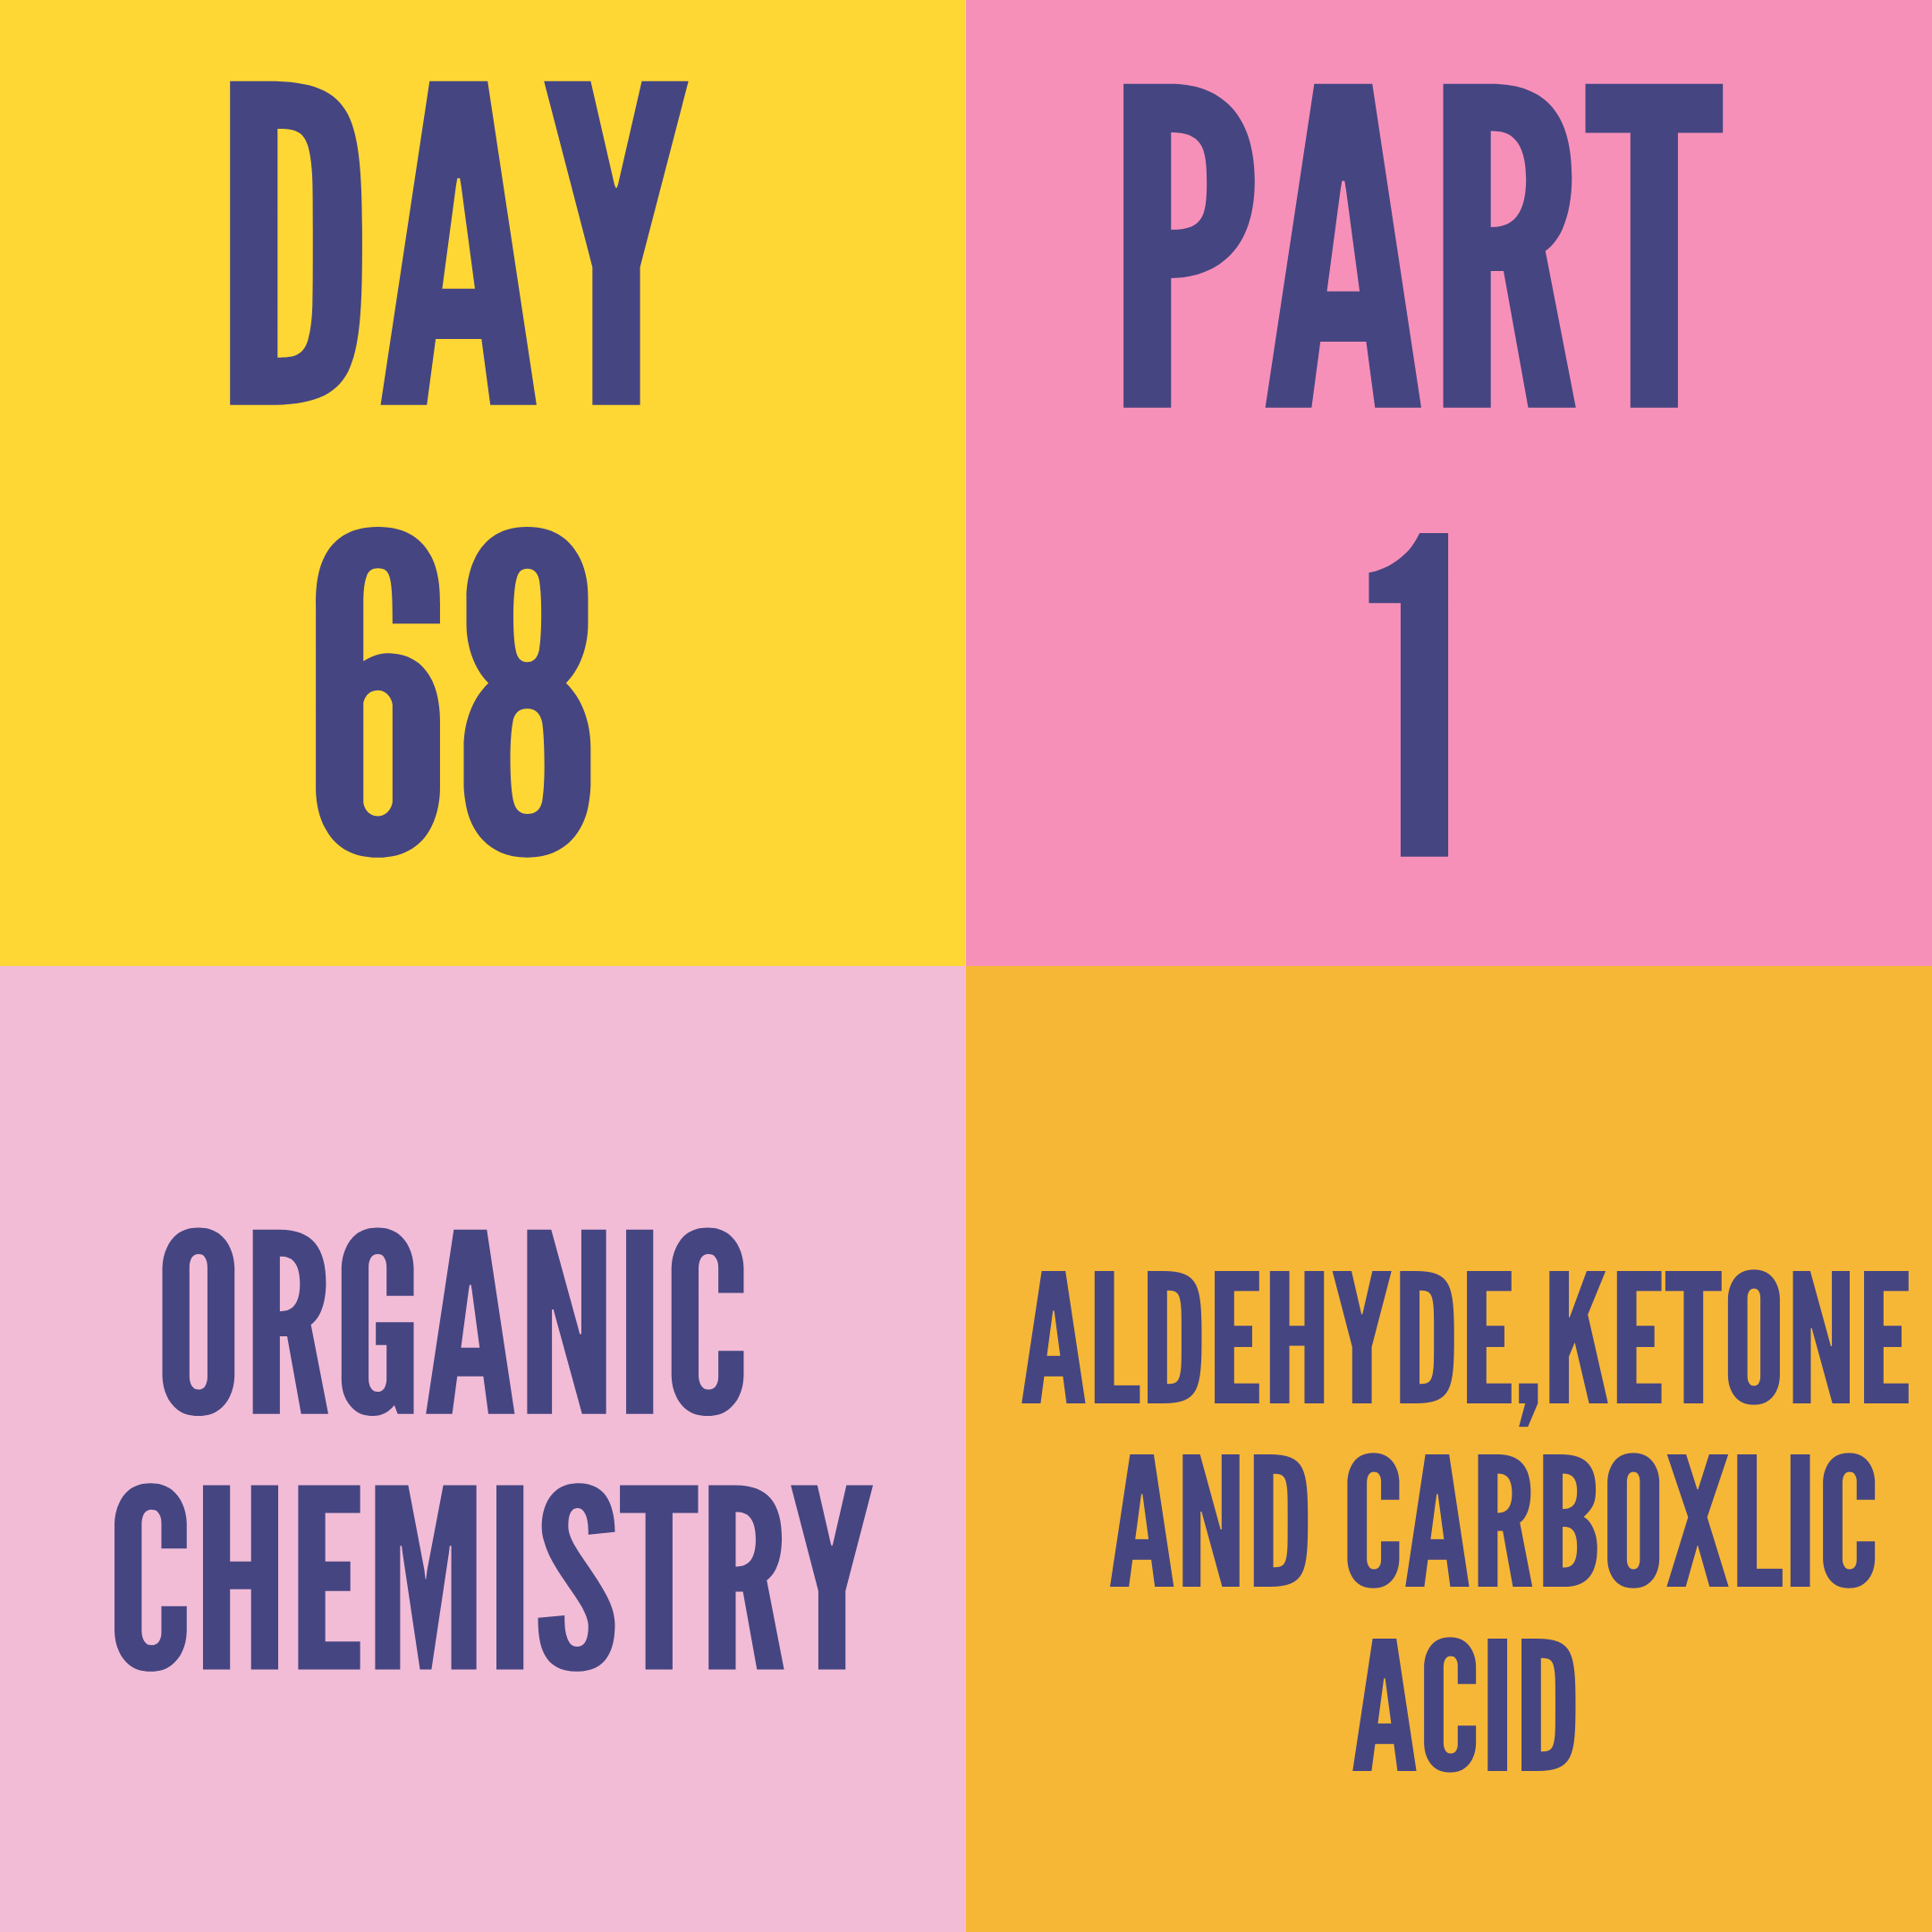 DAY-68 PART-1 ALDEHYDE,KETONE AND CARBOXLIC ACID